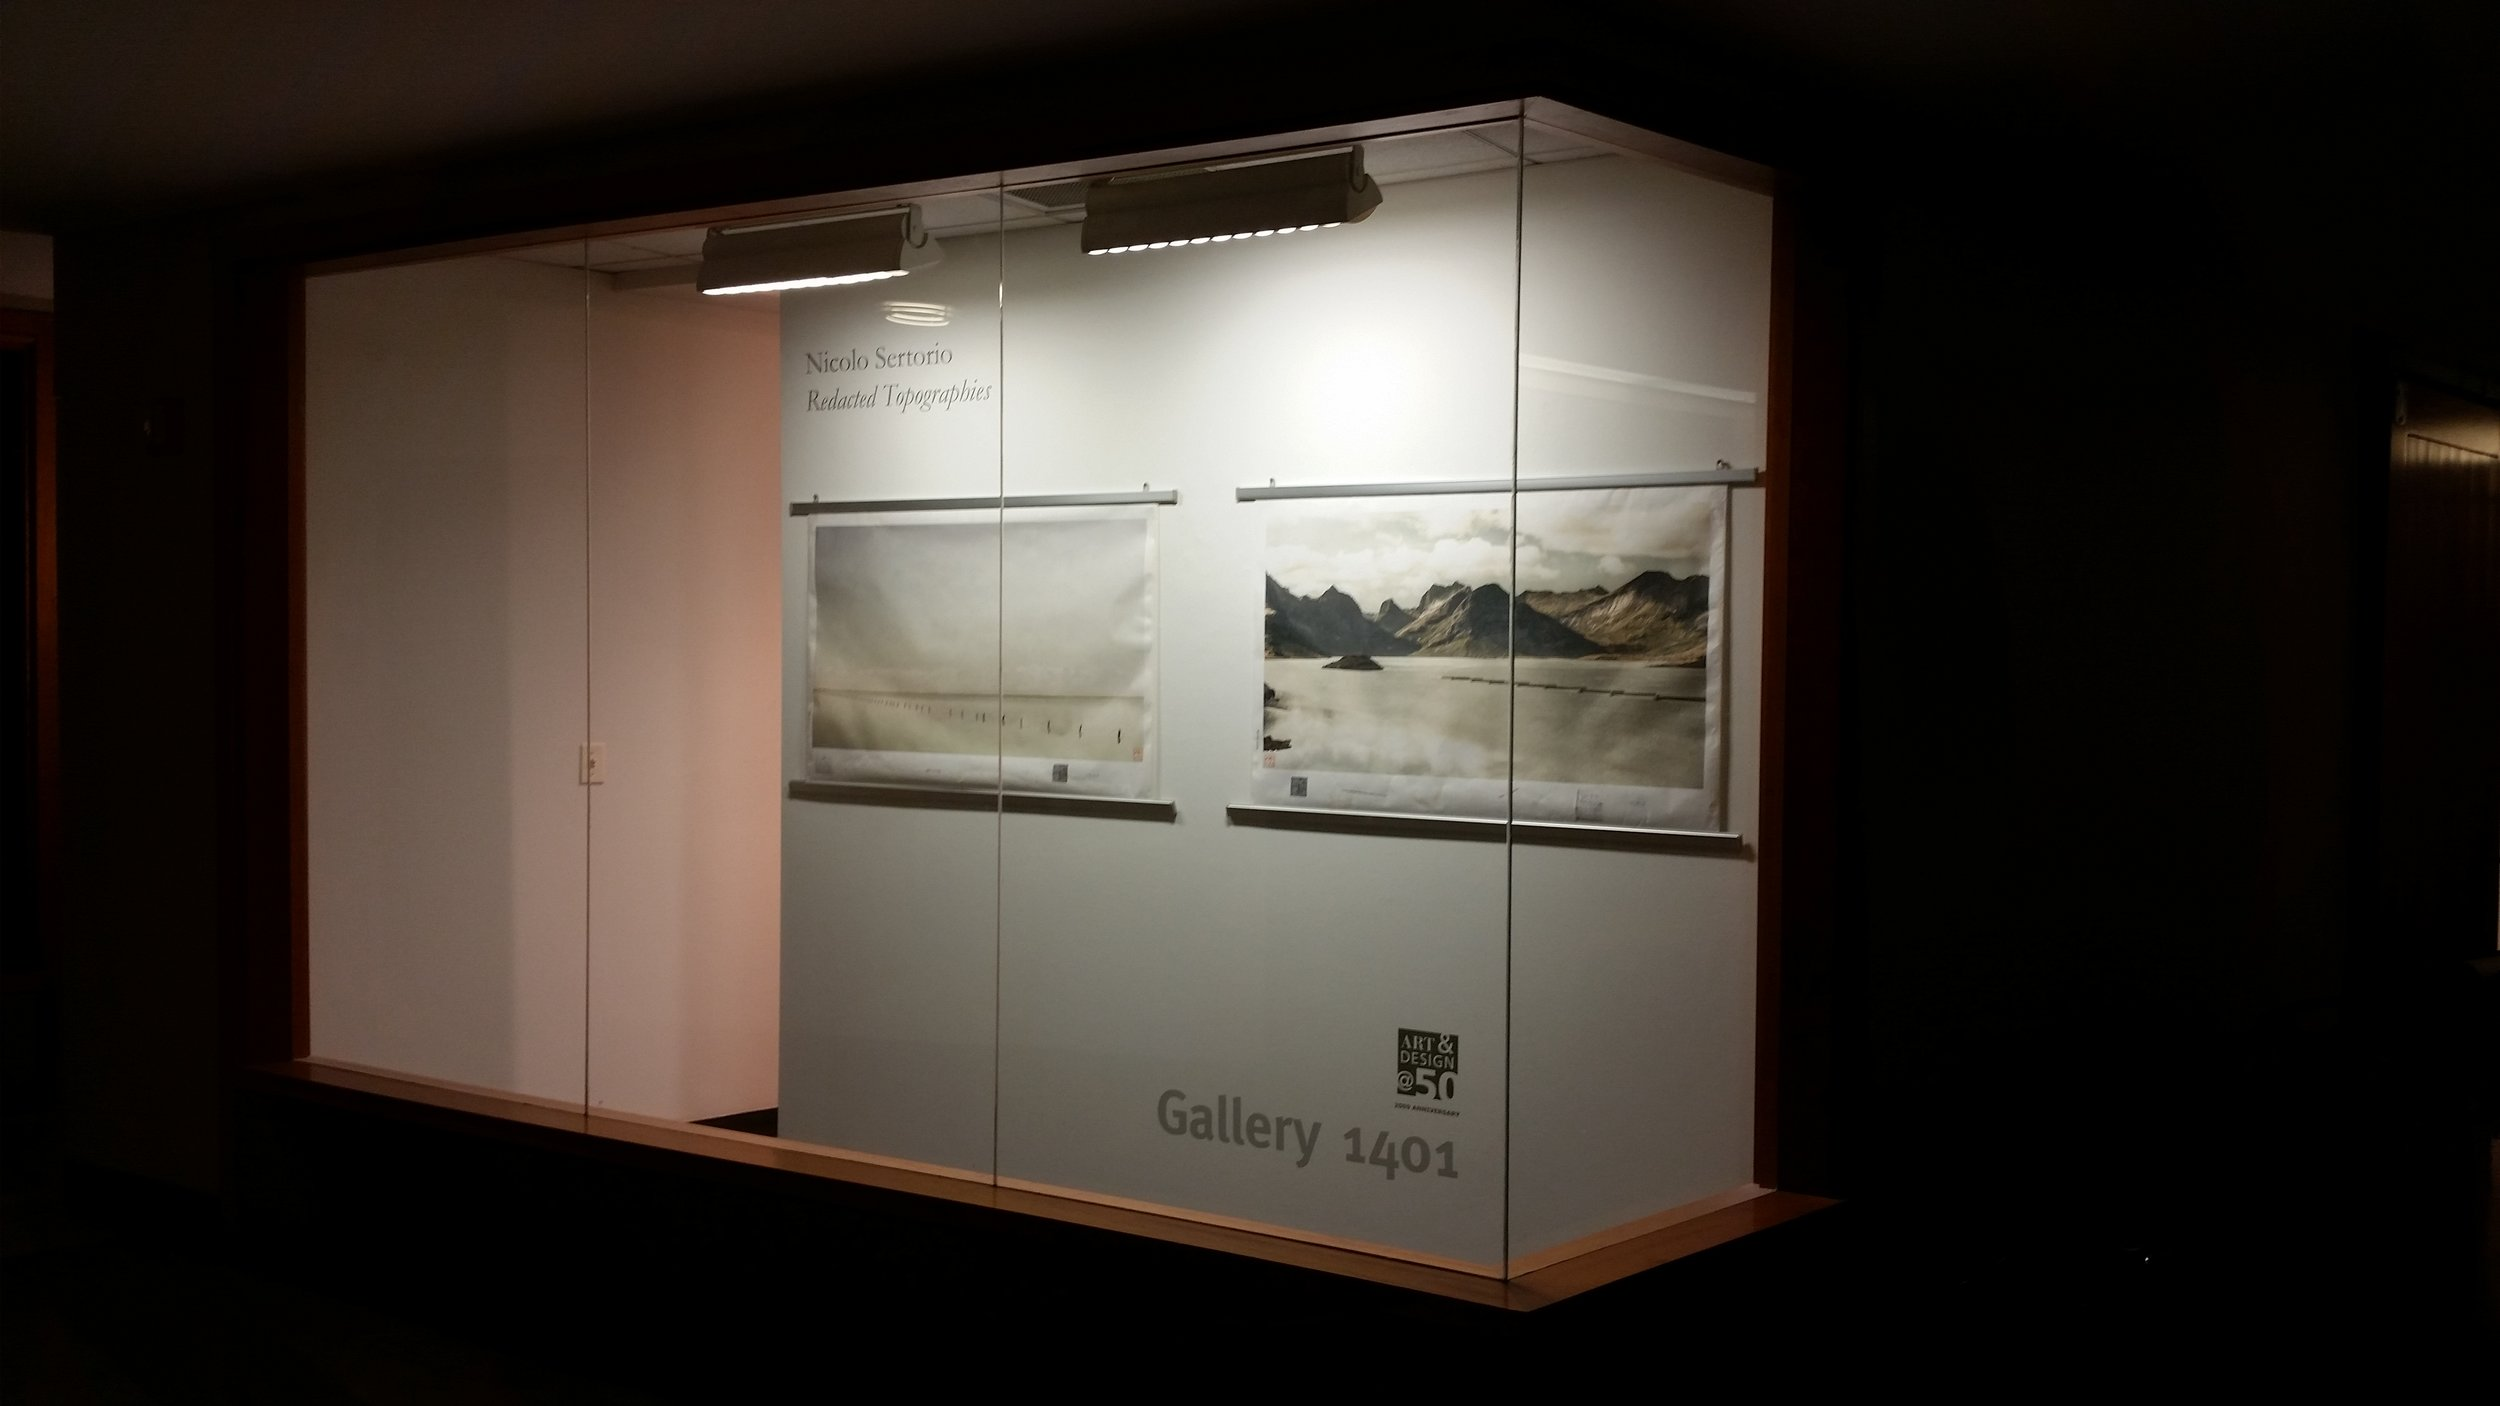 'Redacted Topographies' solo show